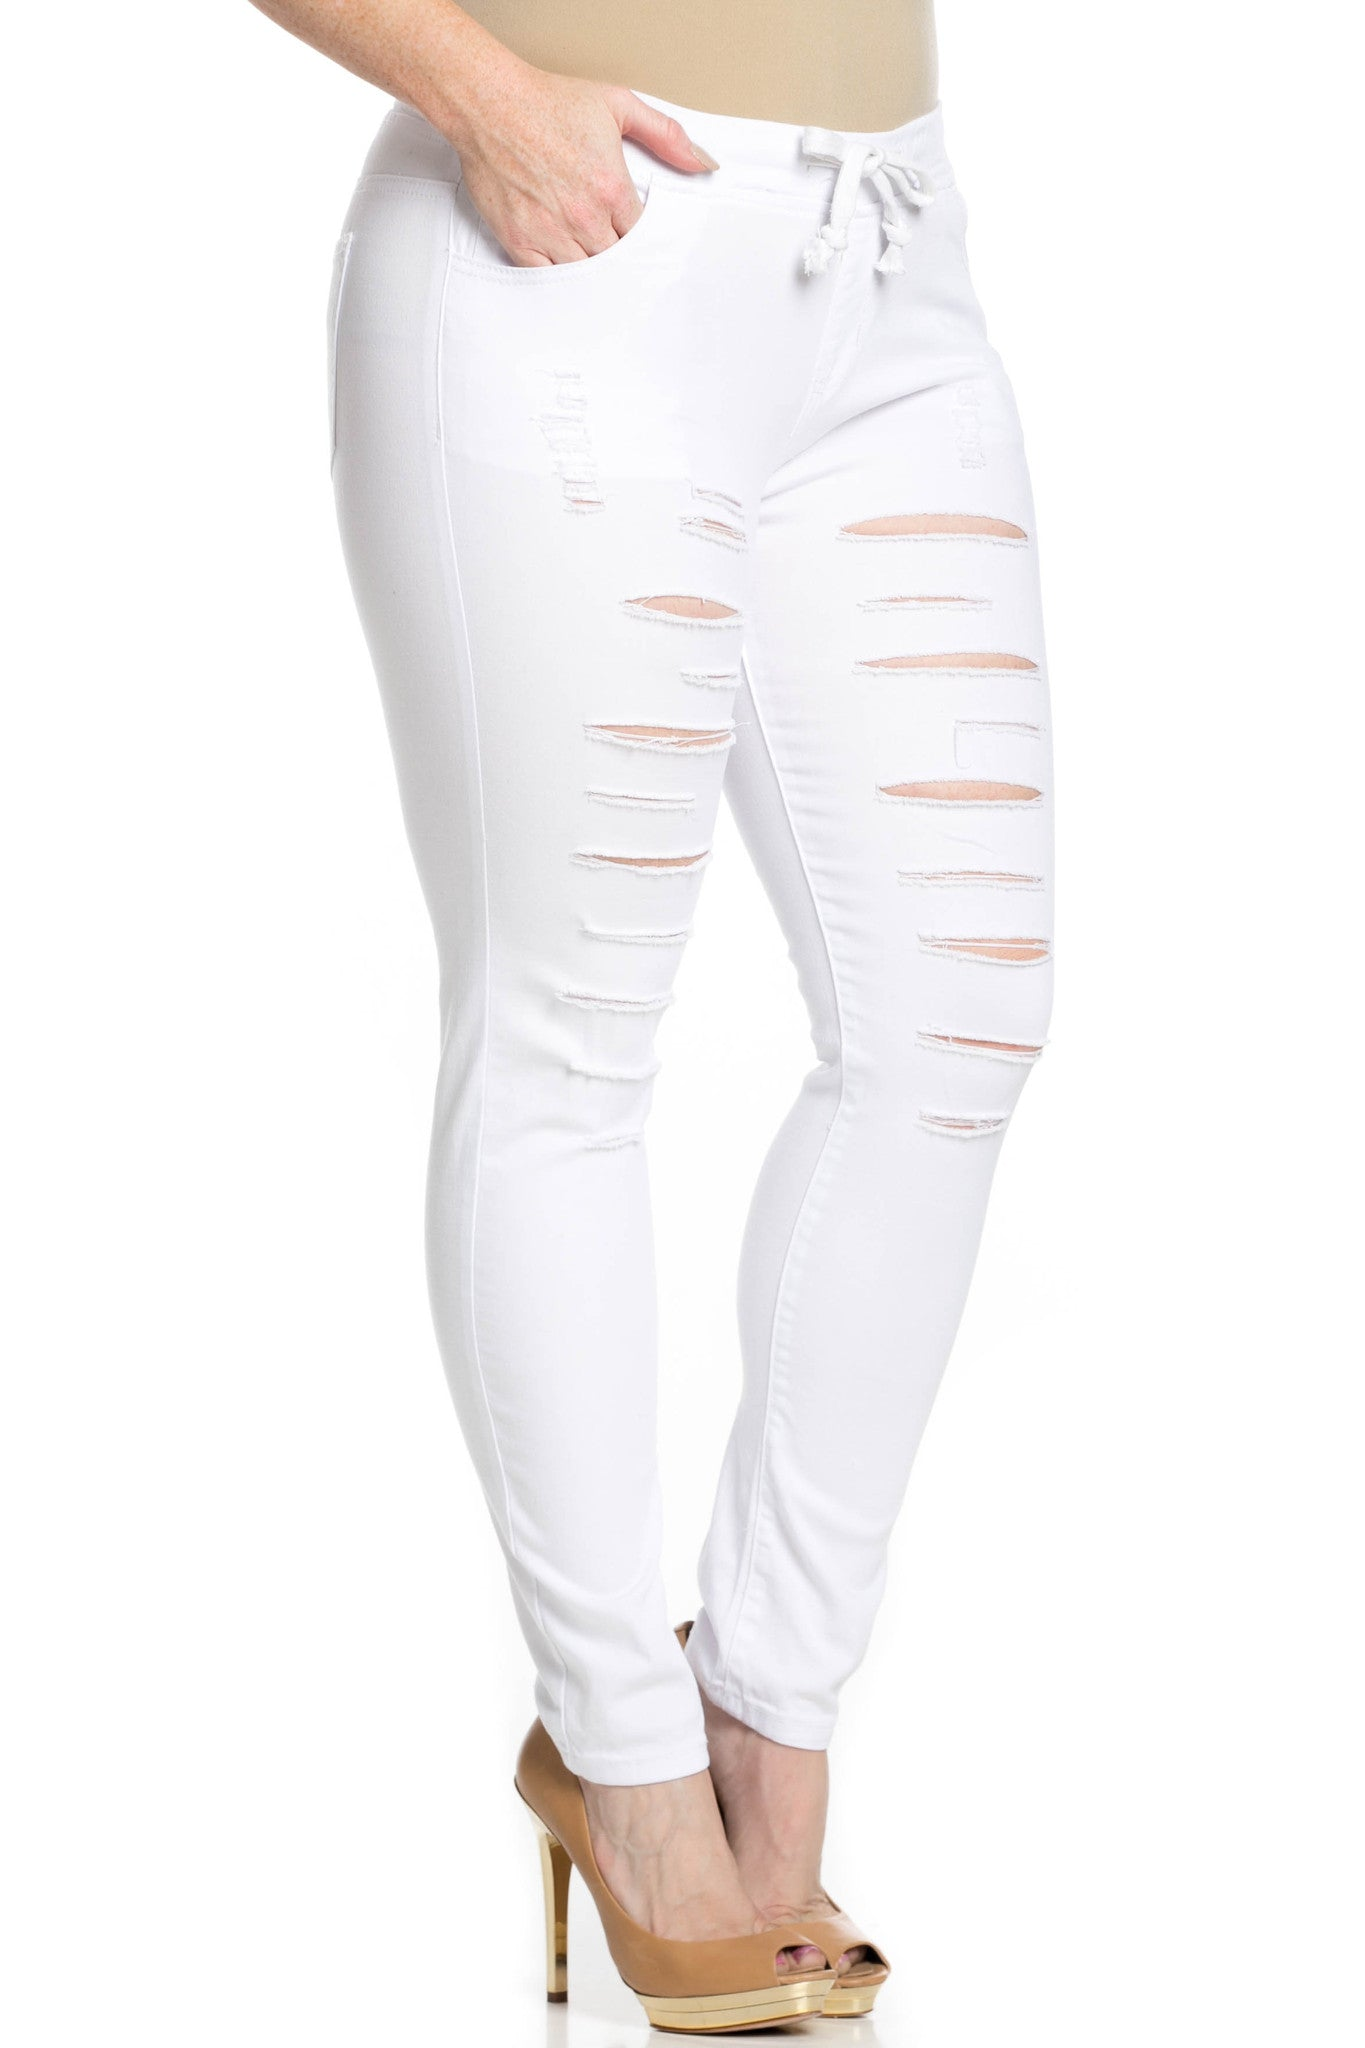 Distressed Skinny White Jogger Jeans - Pants - My Yuccie - 12